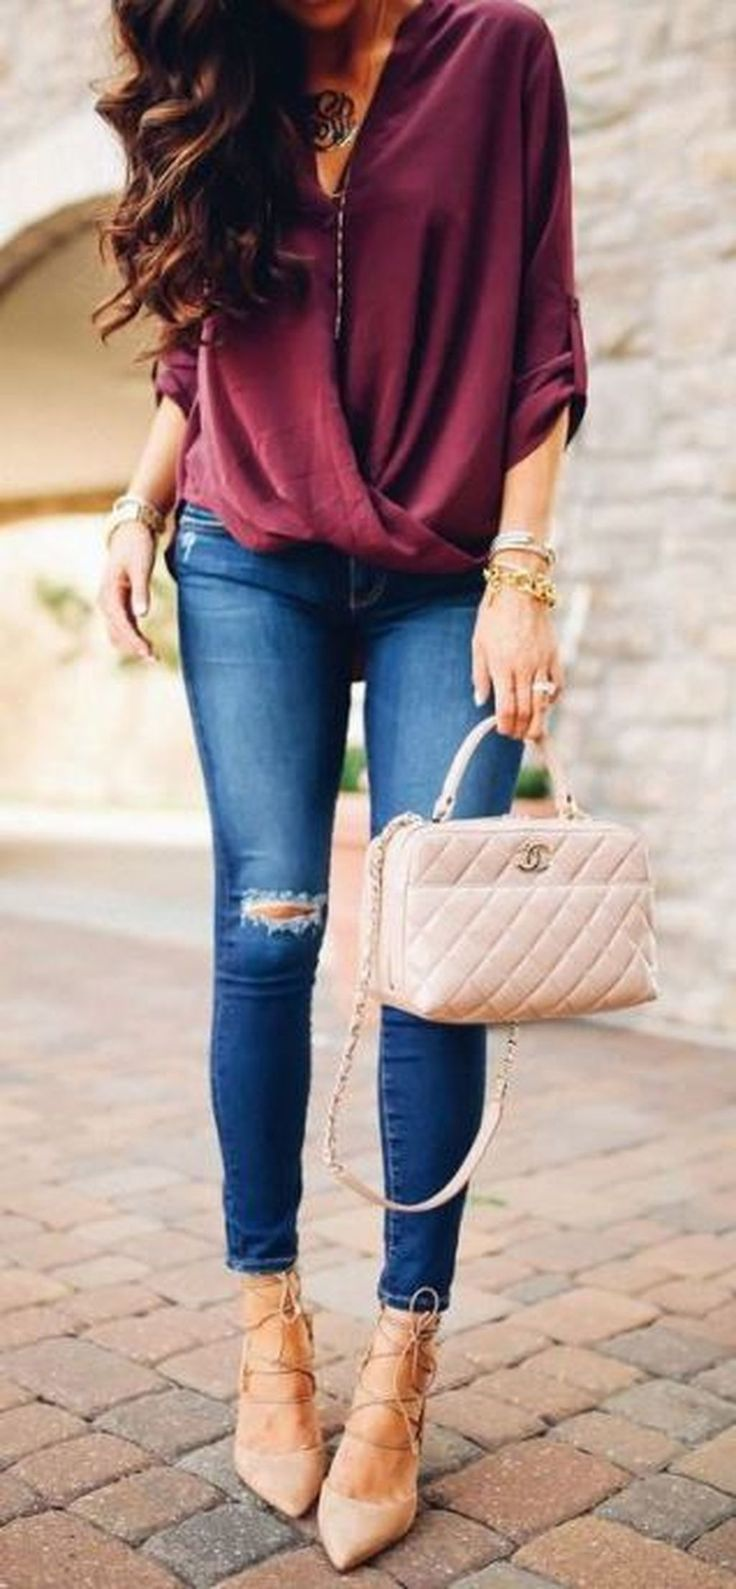 Nice 84 Cute and Affordable Date Night Style Outfits Ideas to Impress Everyone. More at http://aksahinjewelry.com/2017/09/18/84-cute-affordable-date-night-style-outfits-ideas-impress-everyone/